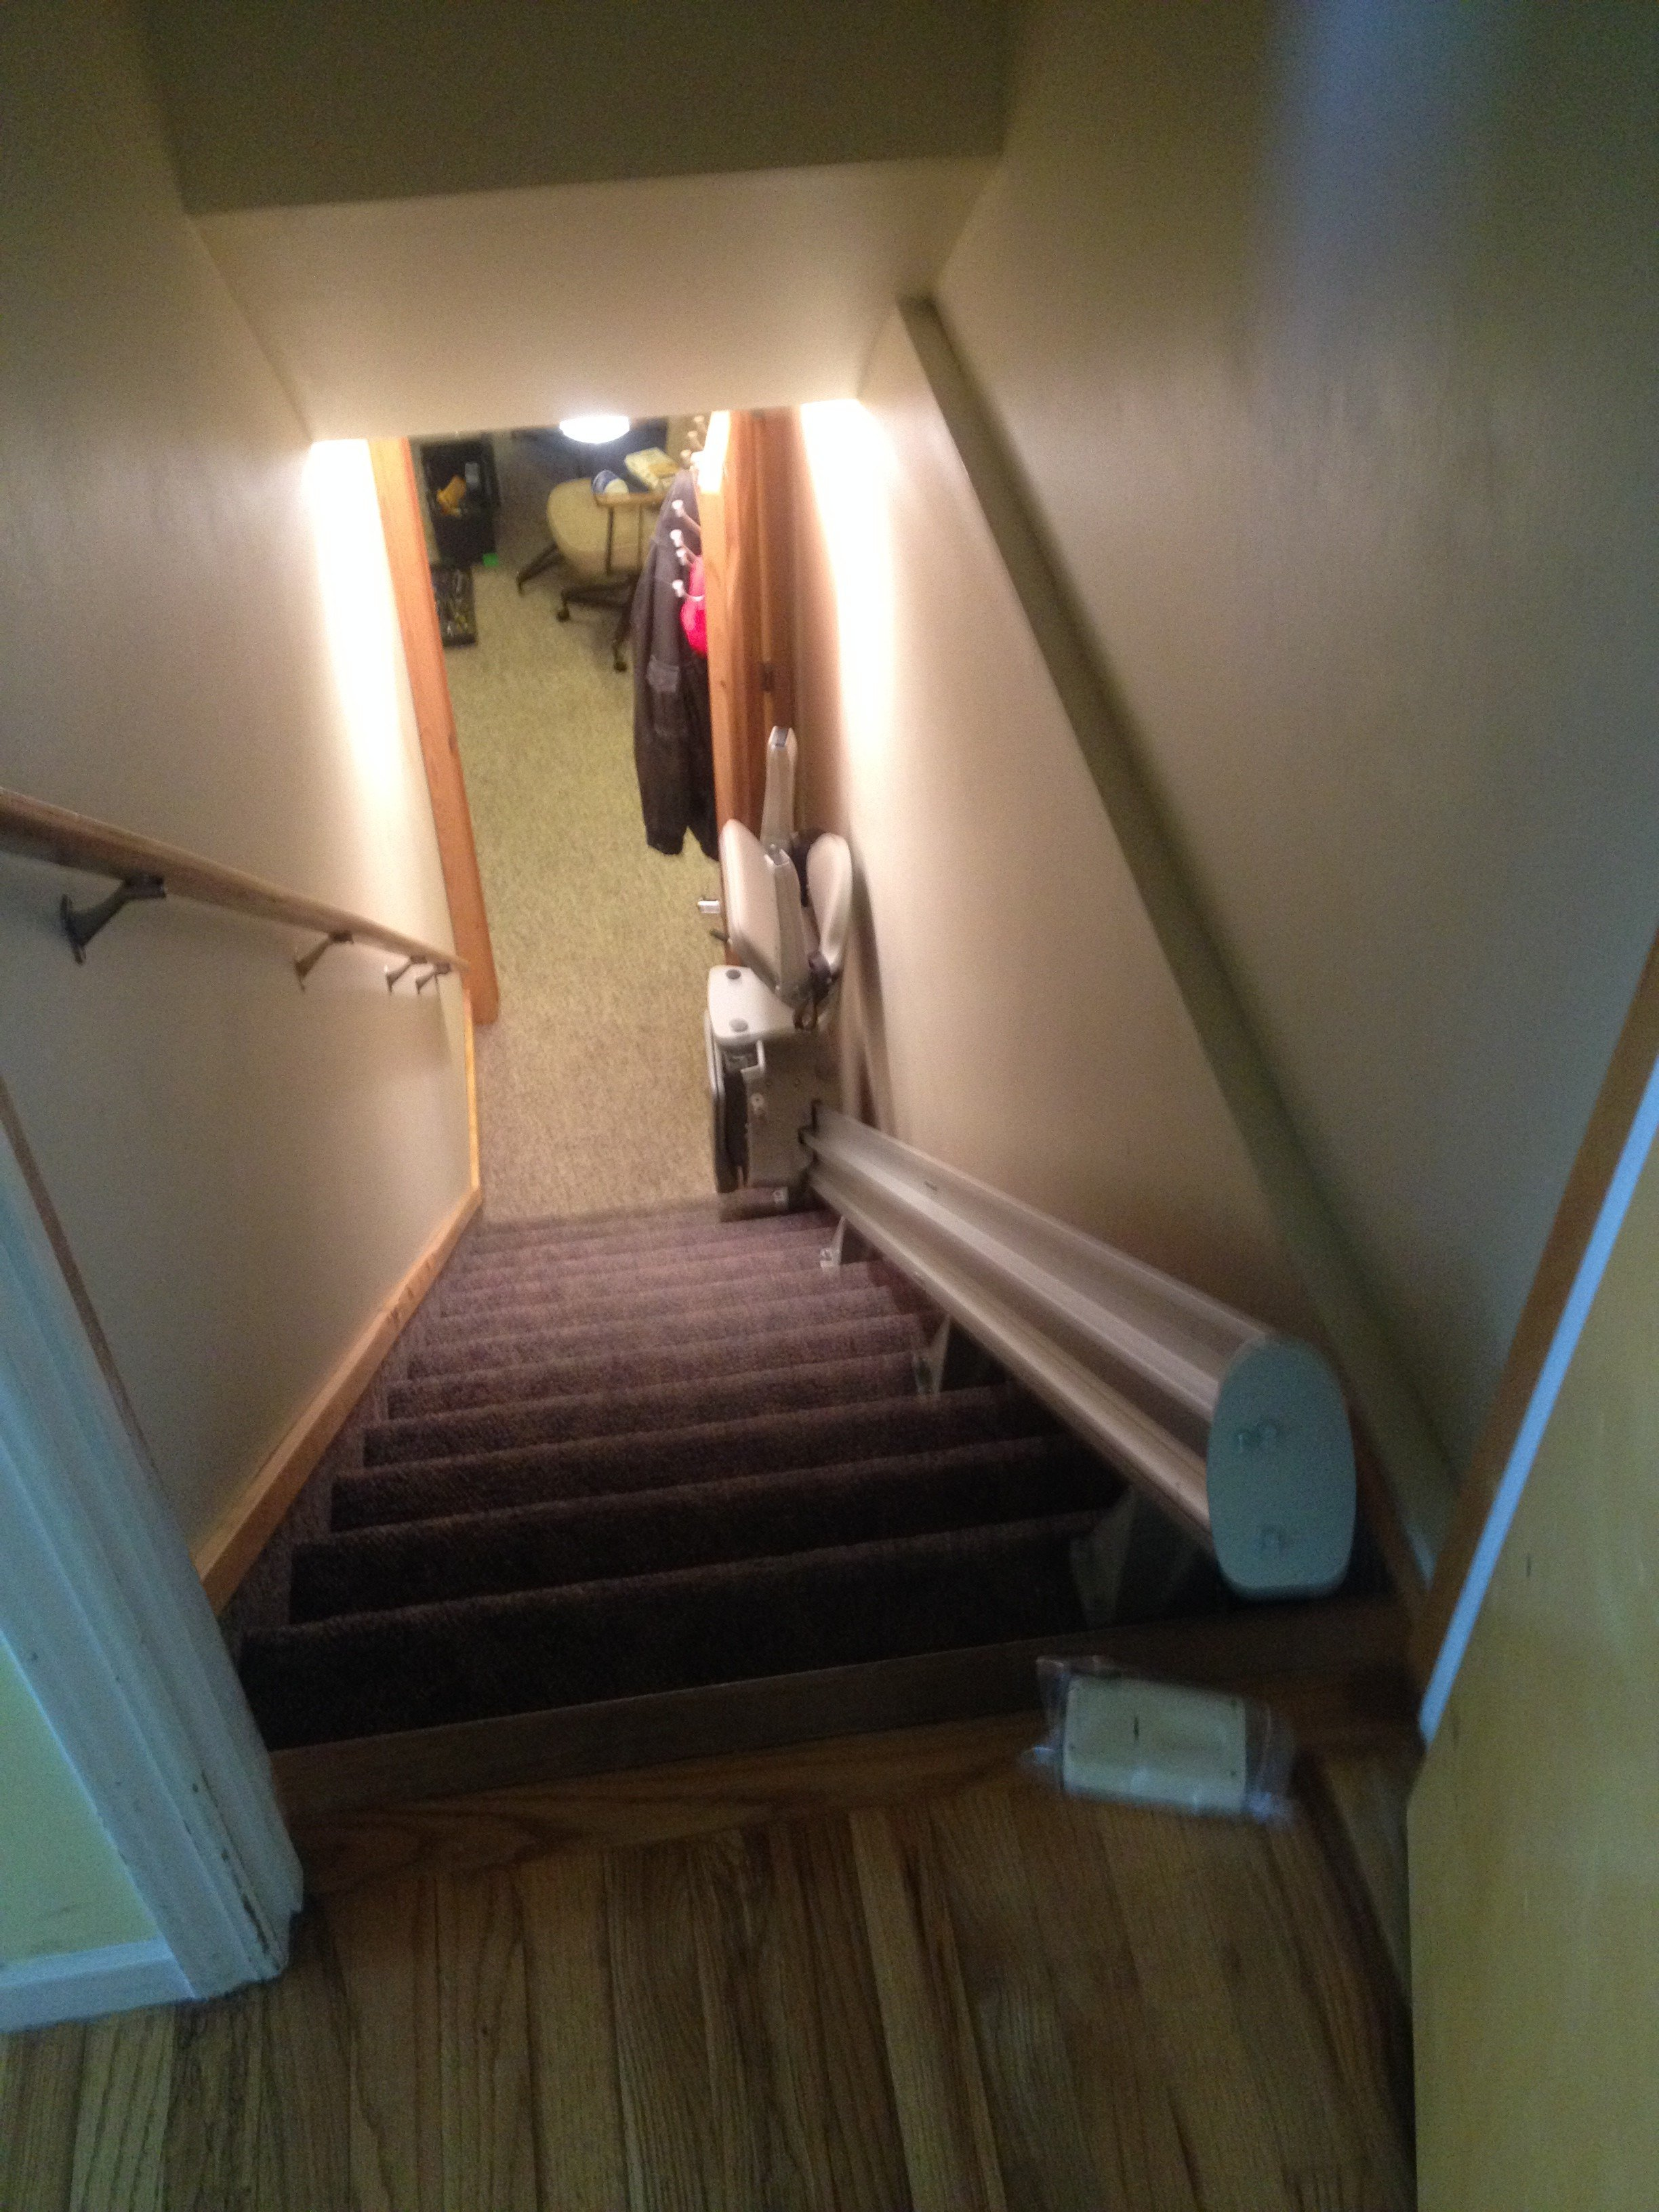 Chair Lift To Basement With Room For Door At Top In